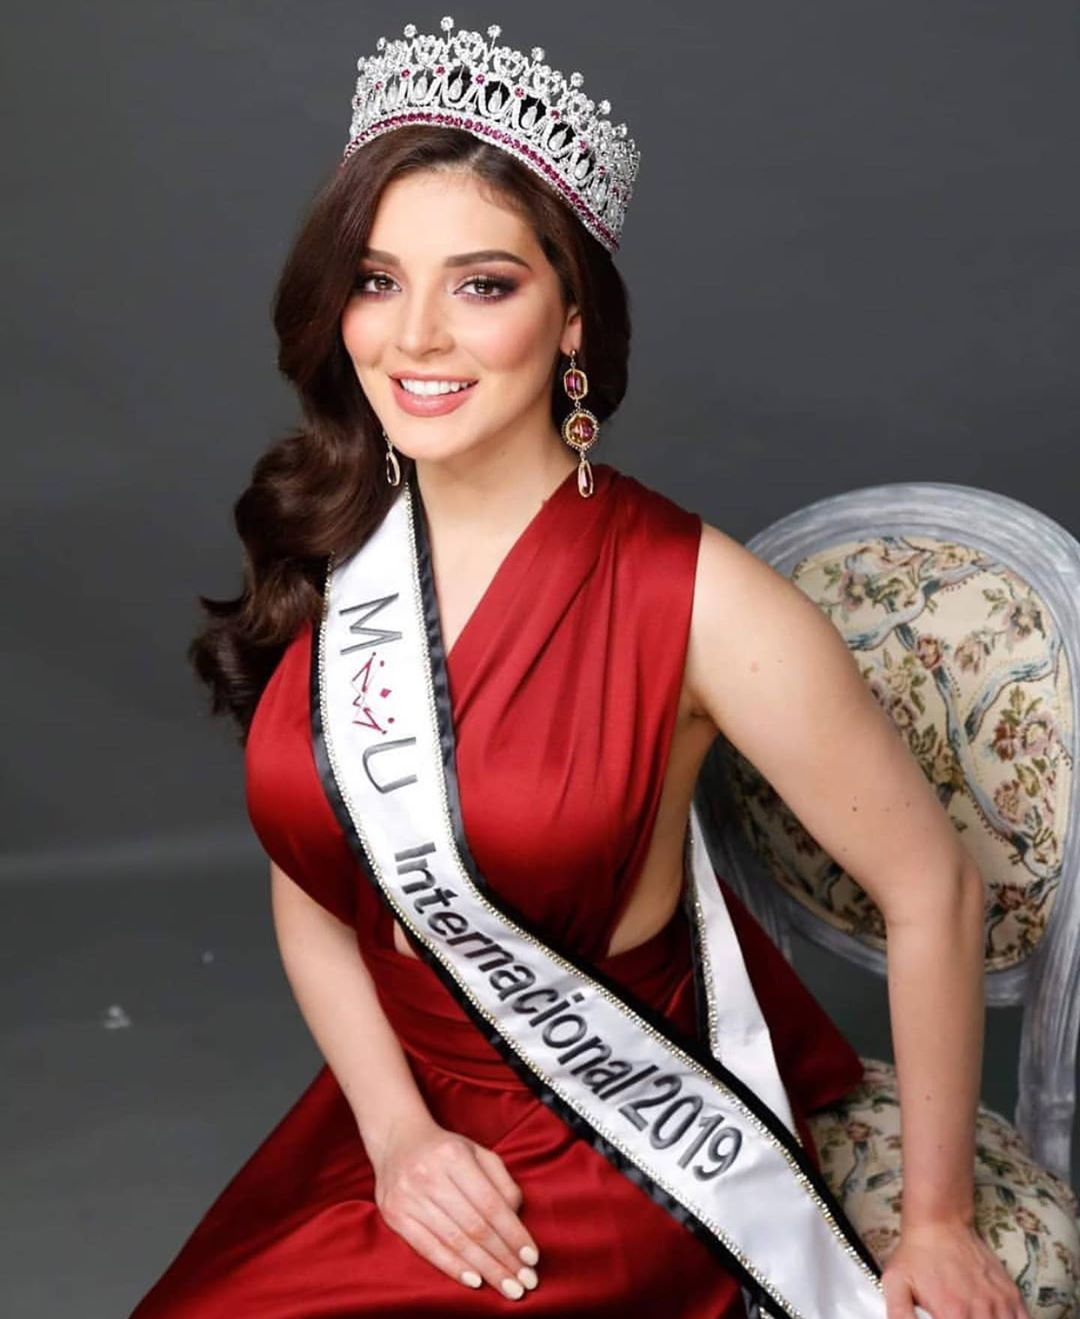 mexicana universal 2018 hora ira para miss international 2019. N5yoqsom